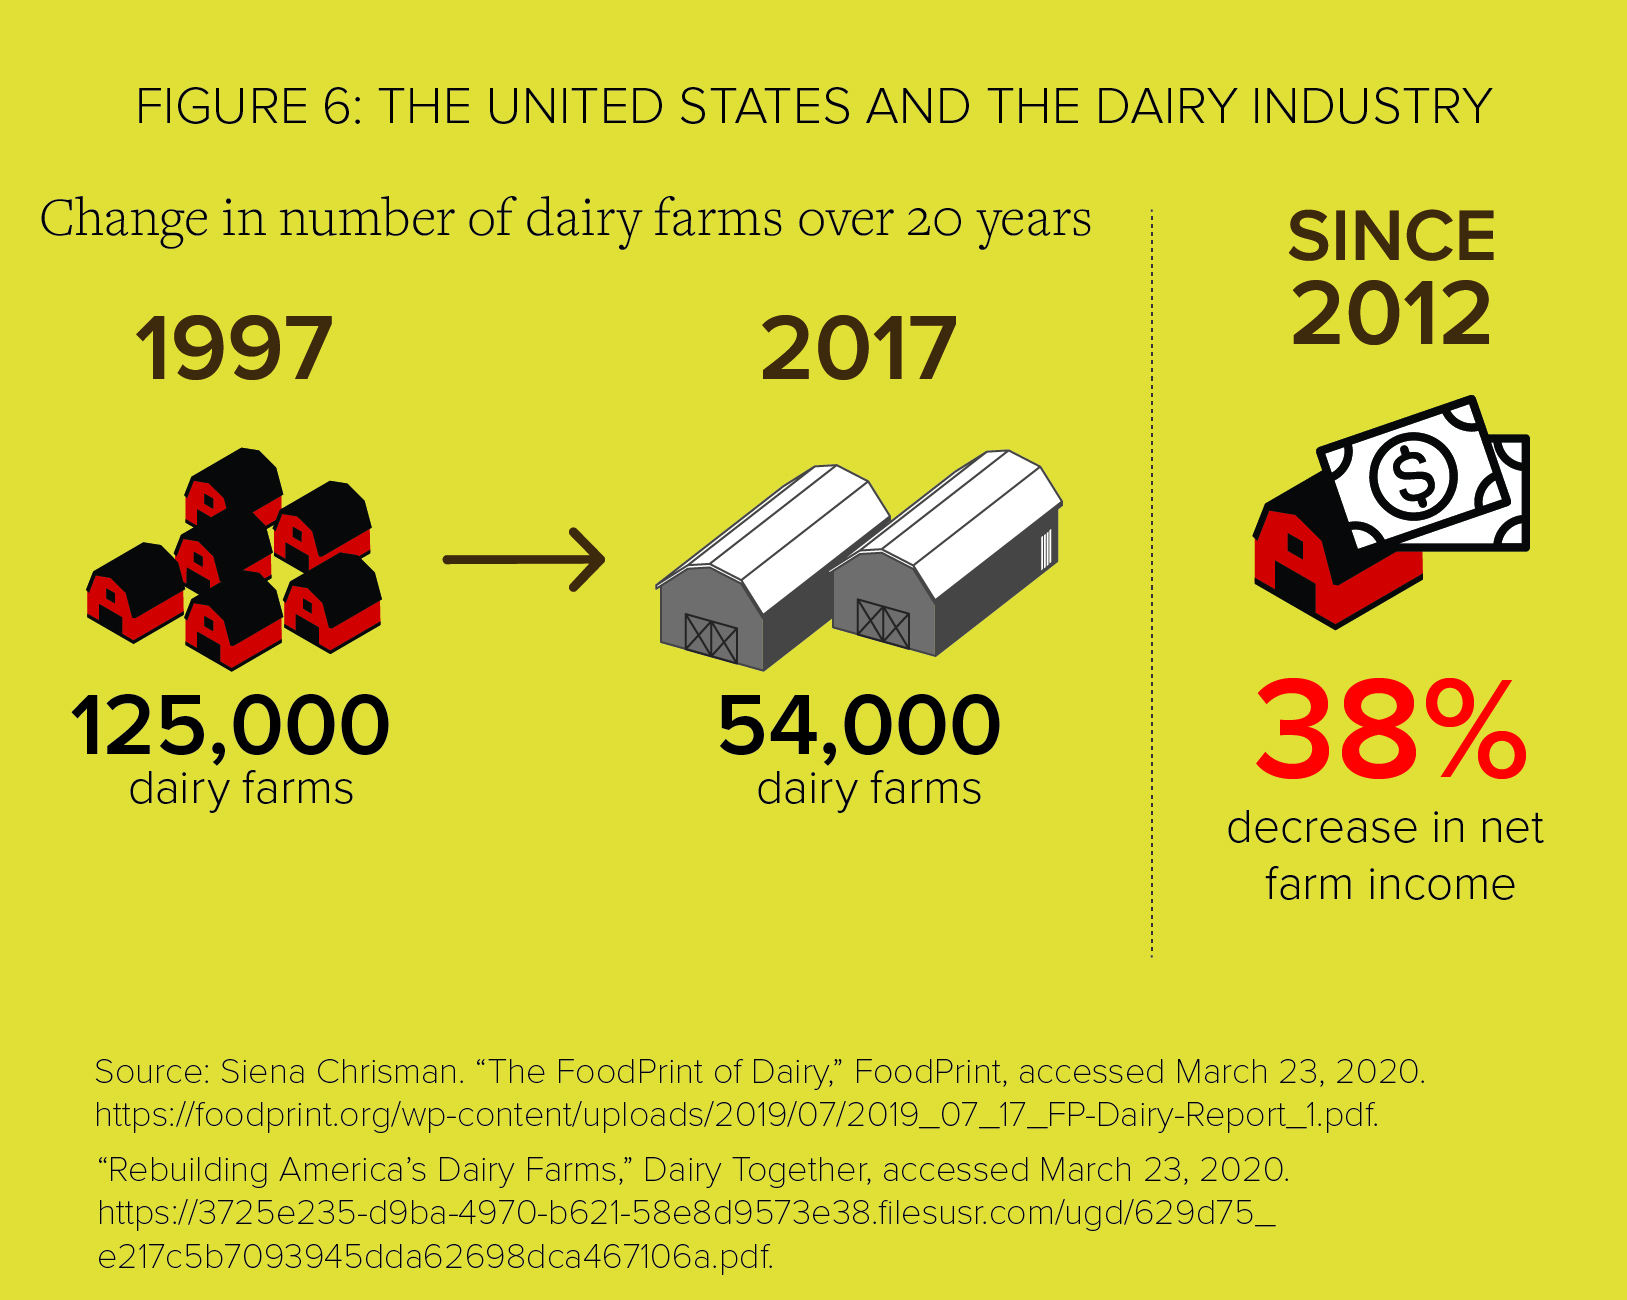 FigurE 6: The United States and the Dairy Industry